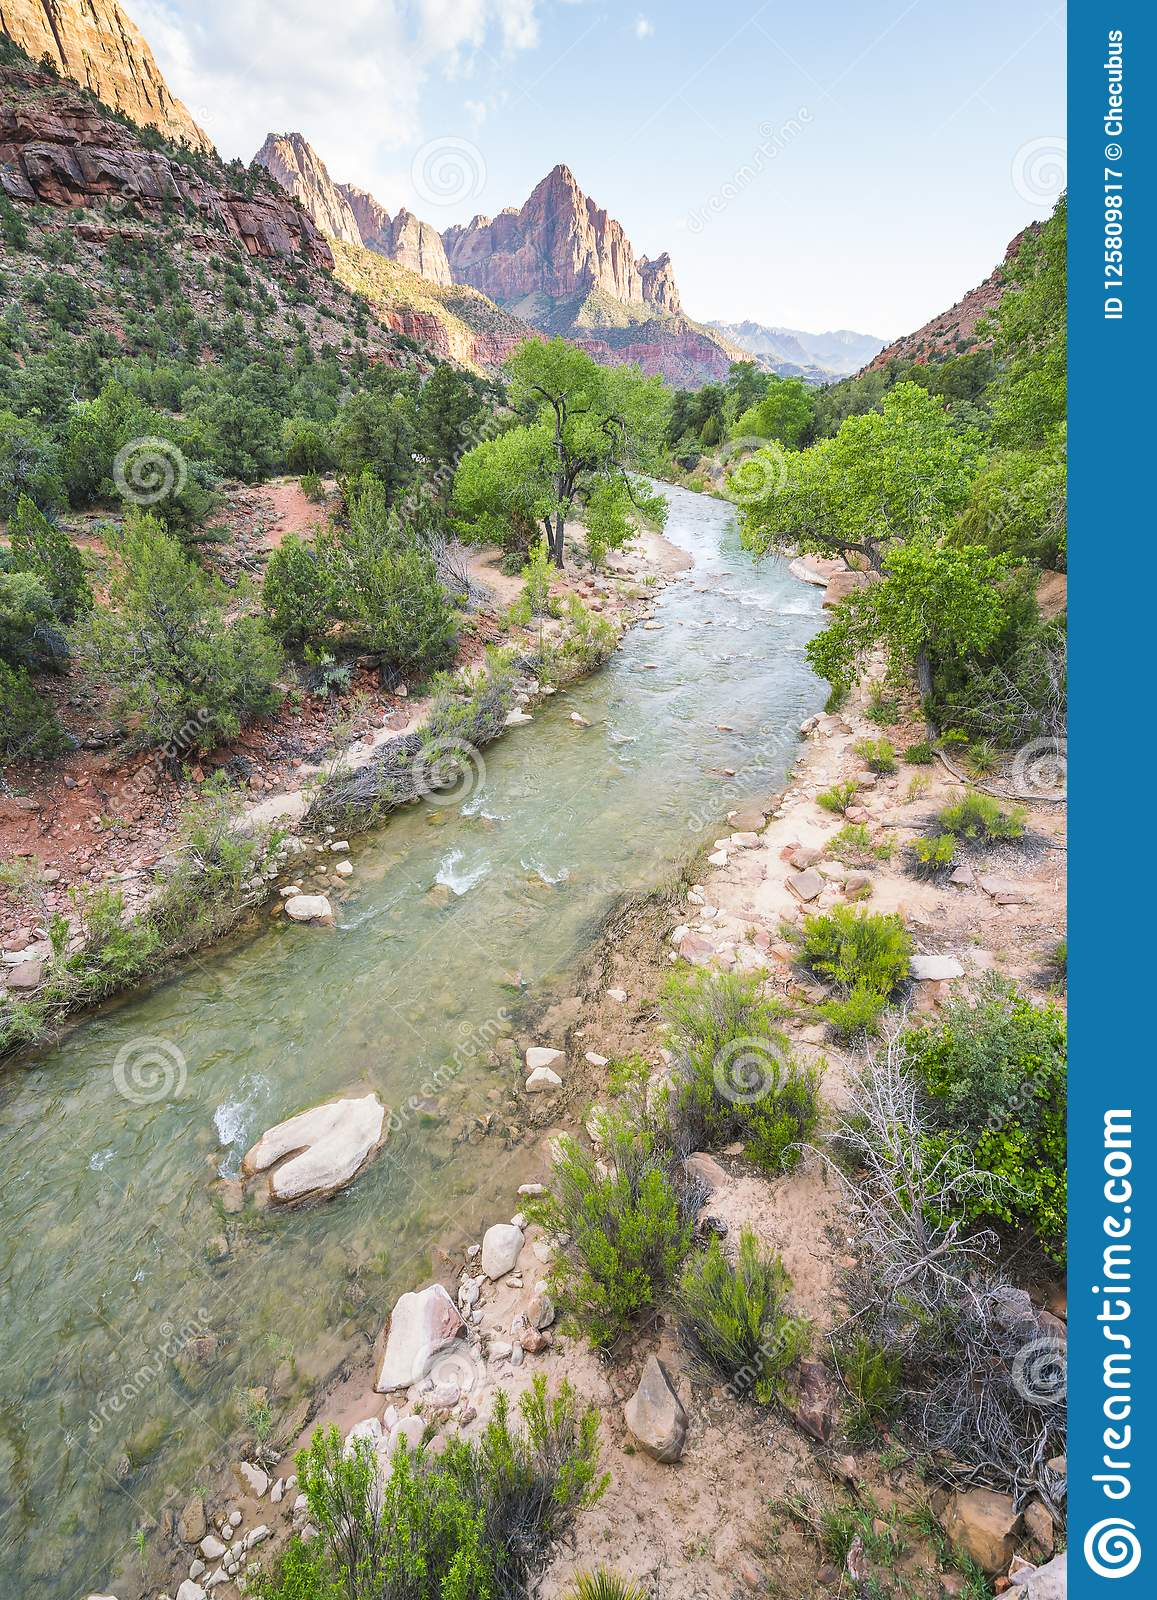 Zion National Park Travel Costs & Prices - Angels Landing